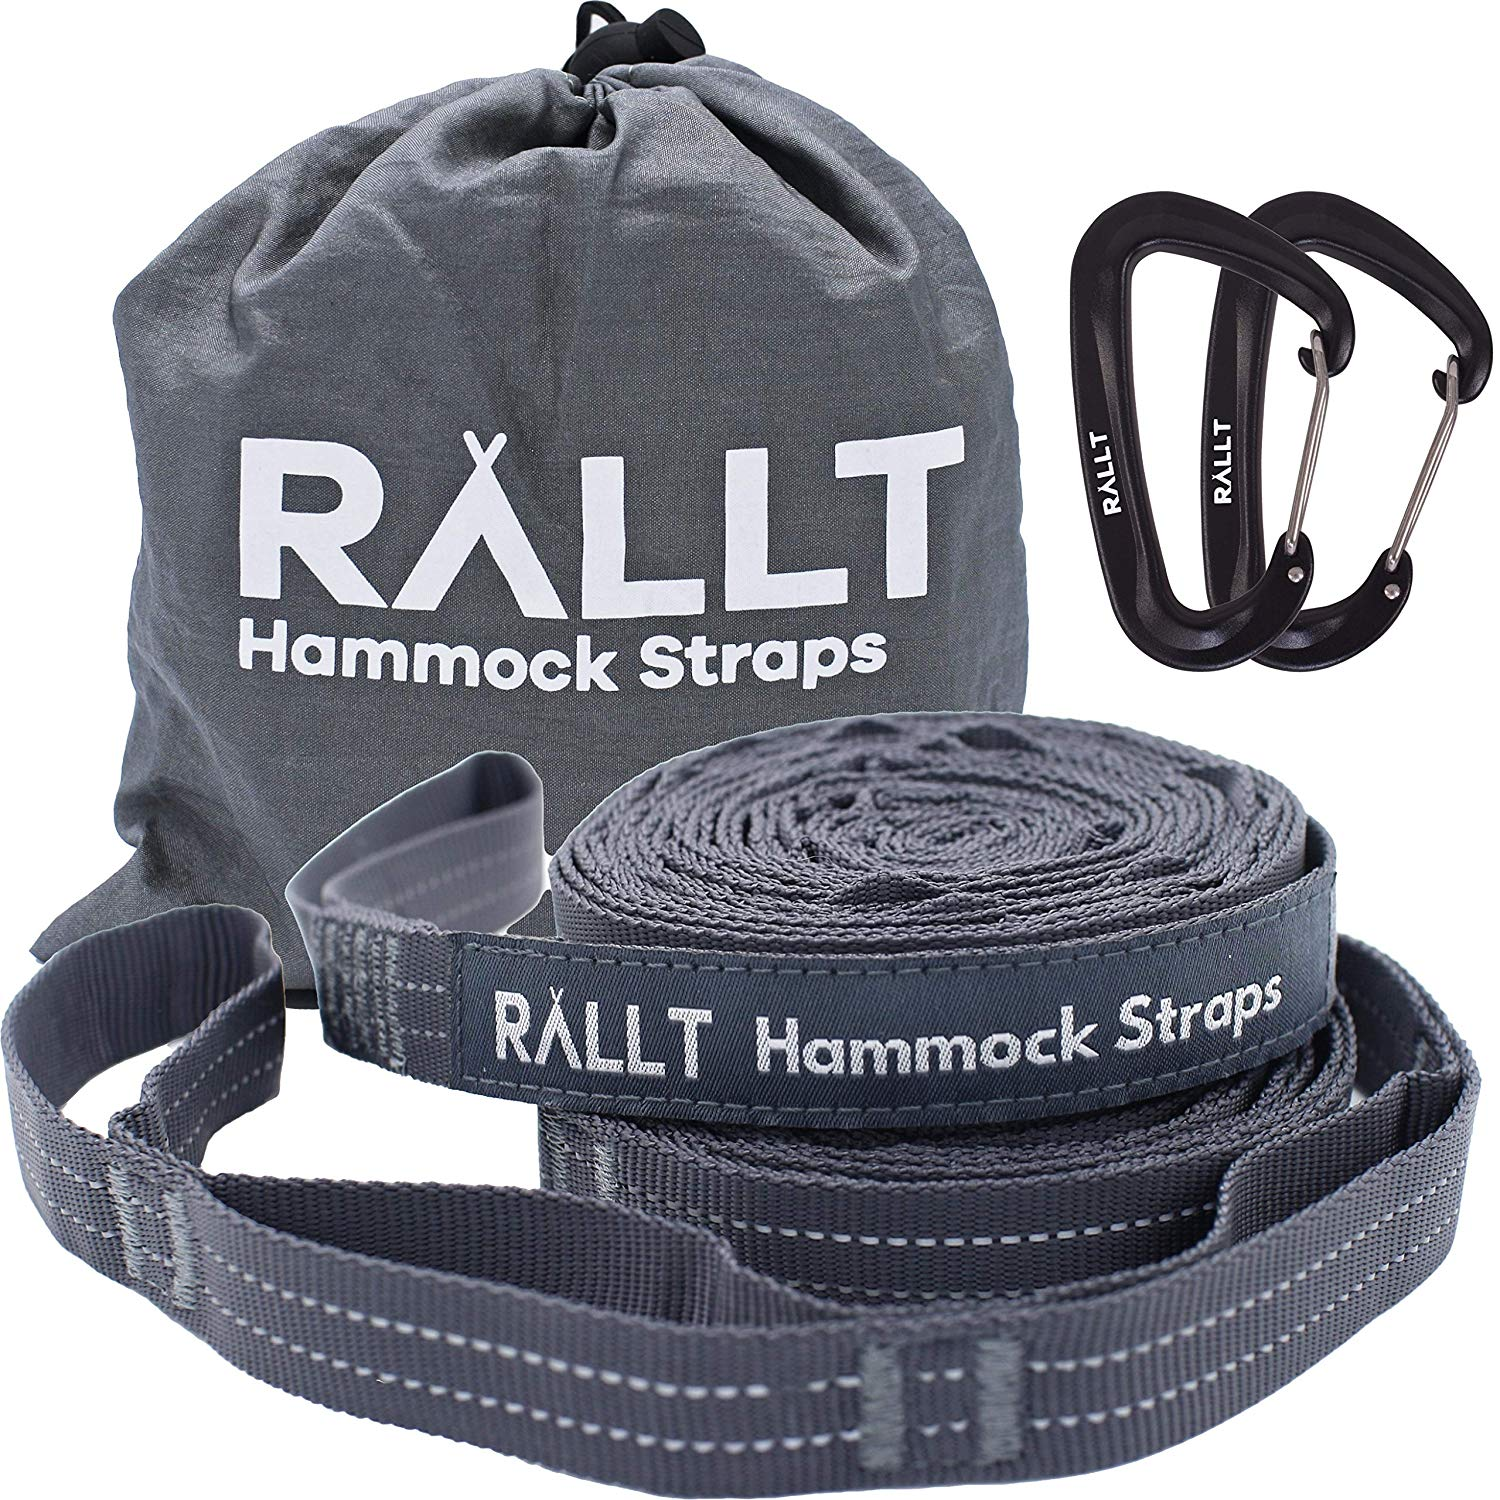 Top 10 Best Hammock Straps 2021 Reviews 5